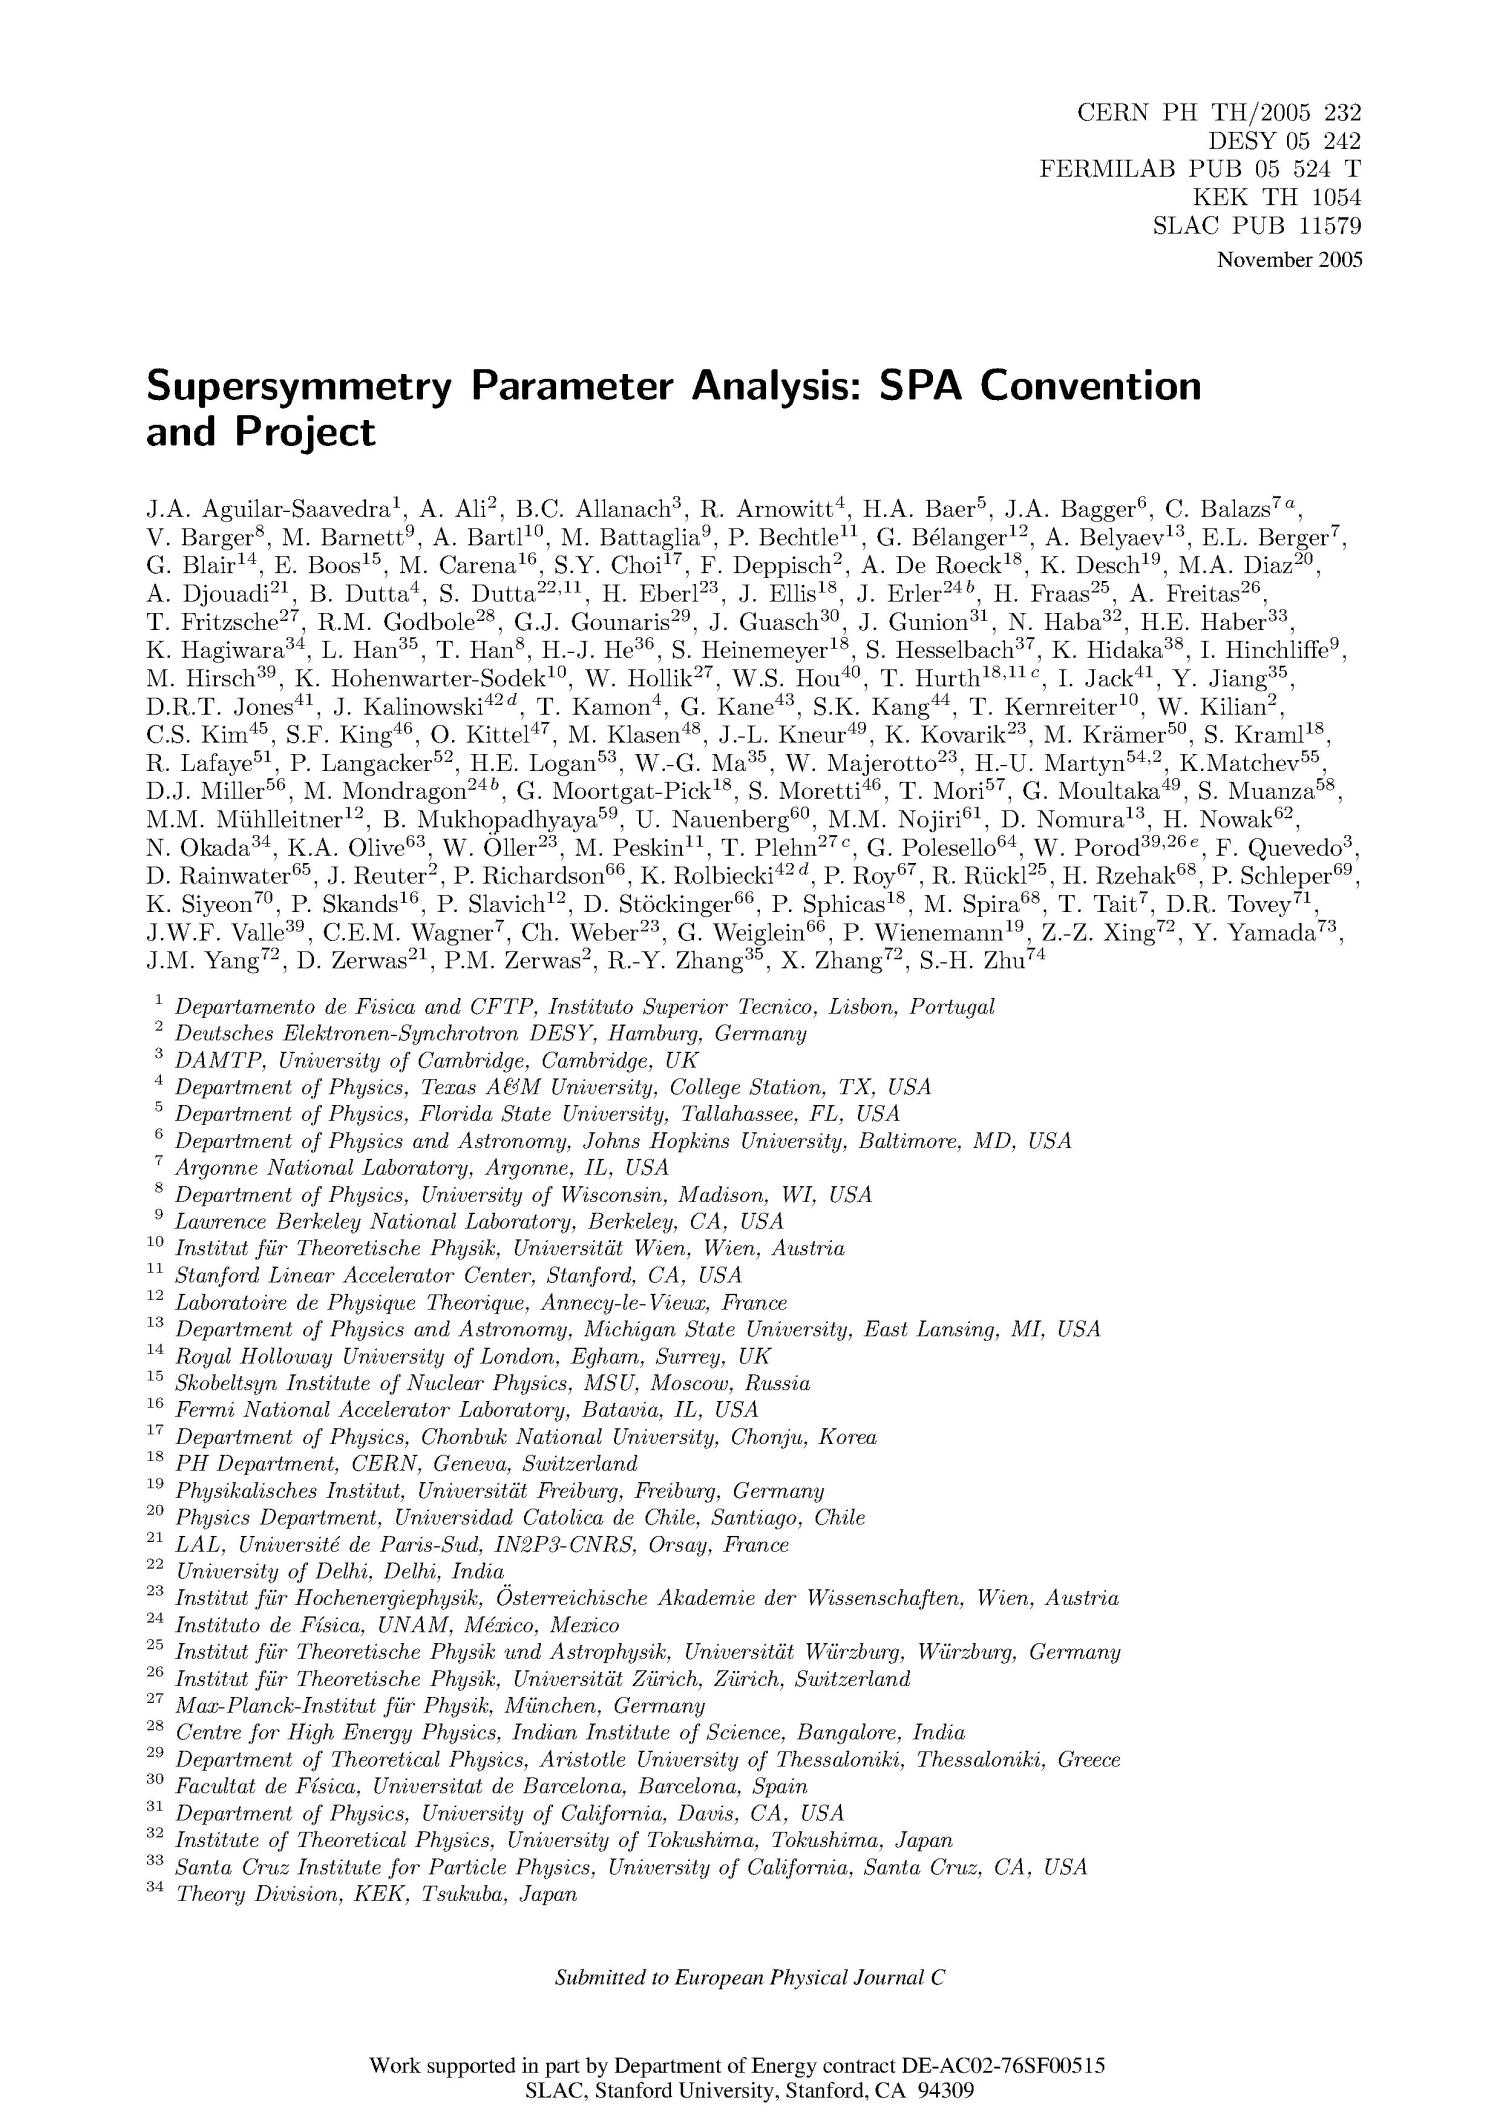 Supersymmetry Parameter Analysis: SPA Convention andProject                                                                                                      [Sequence #]: 1 of 19